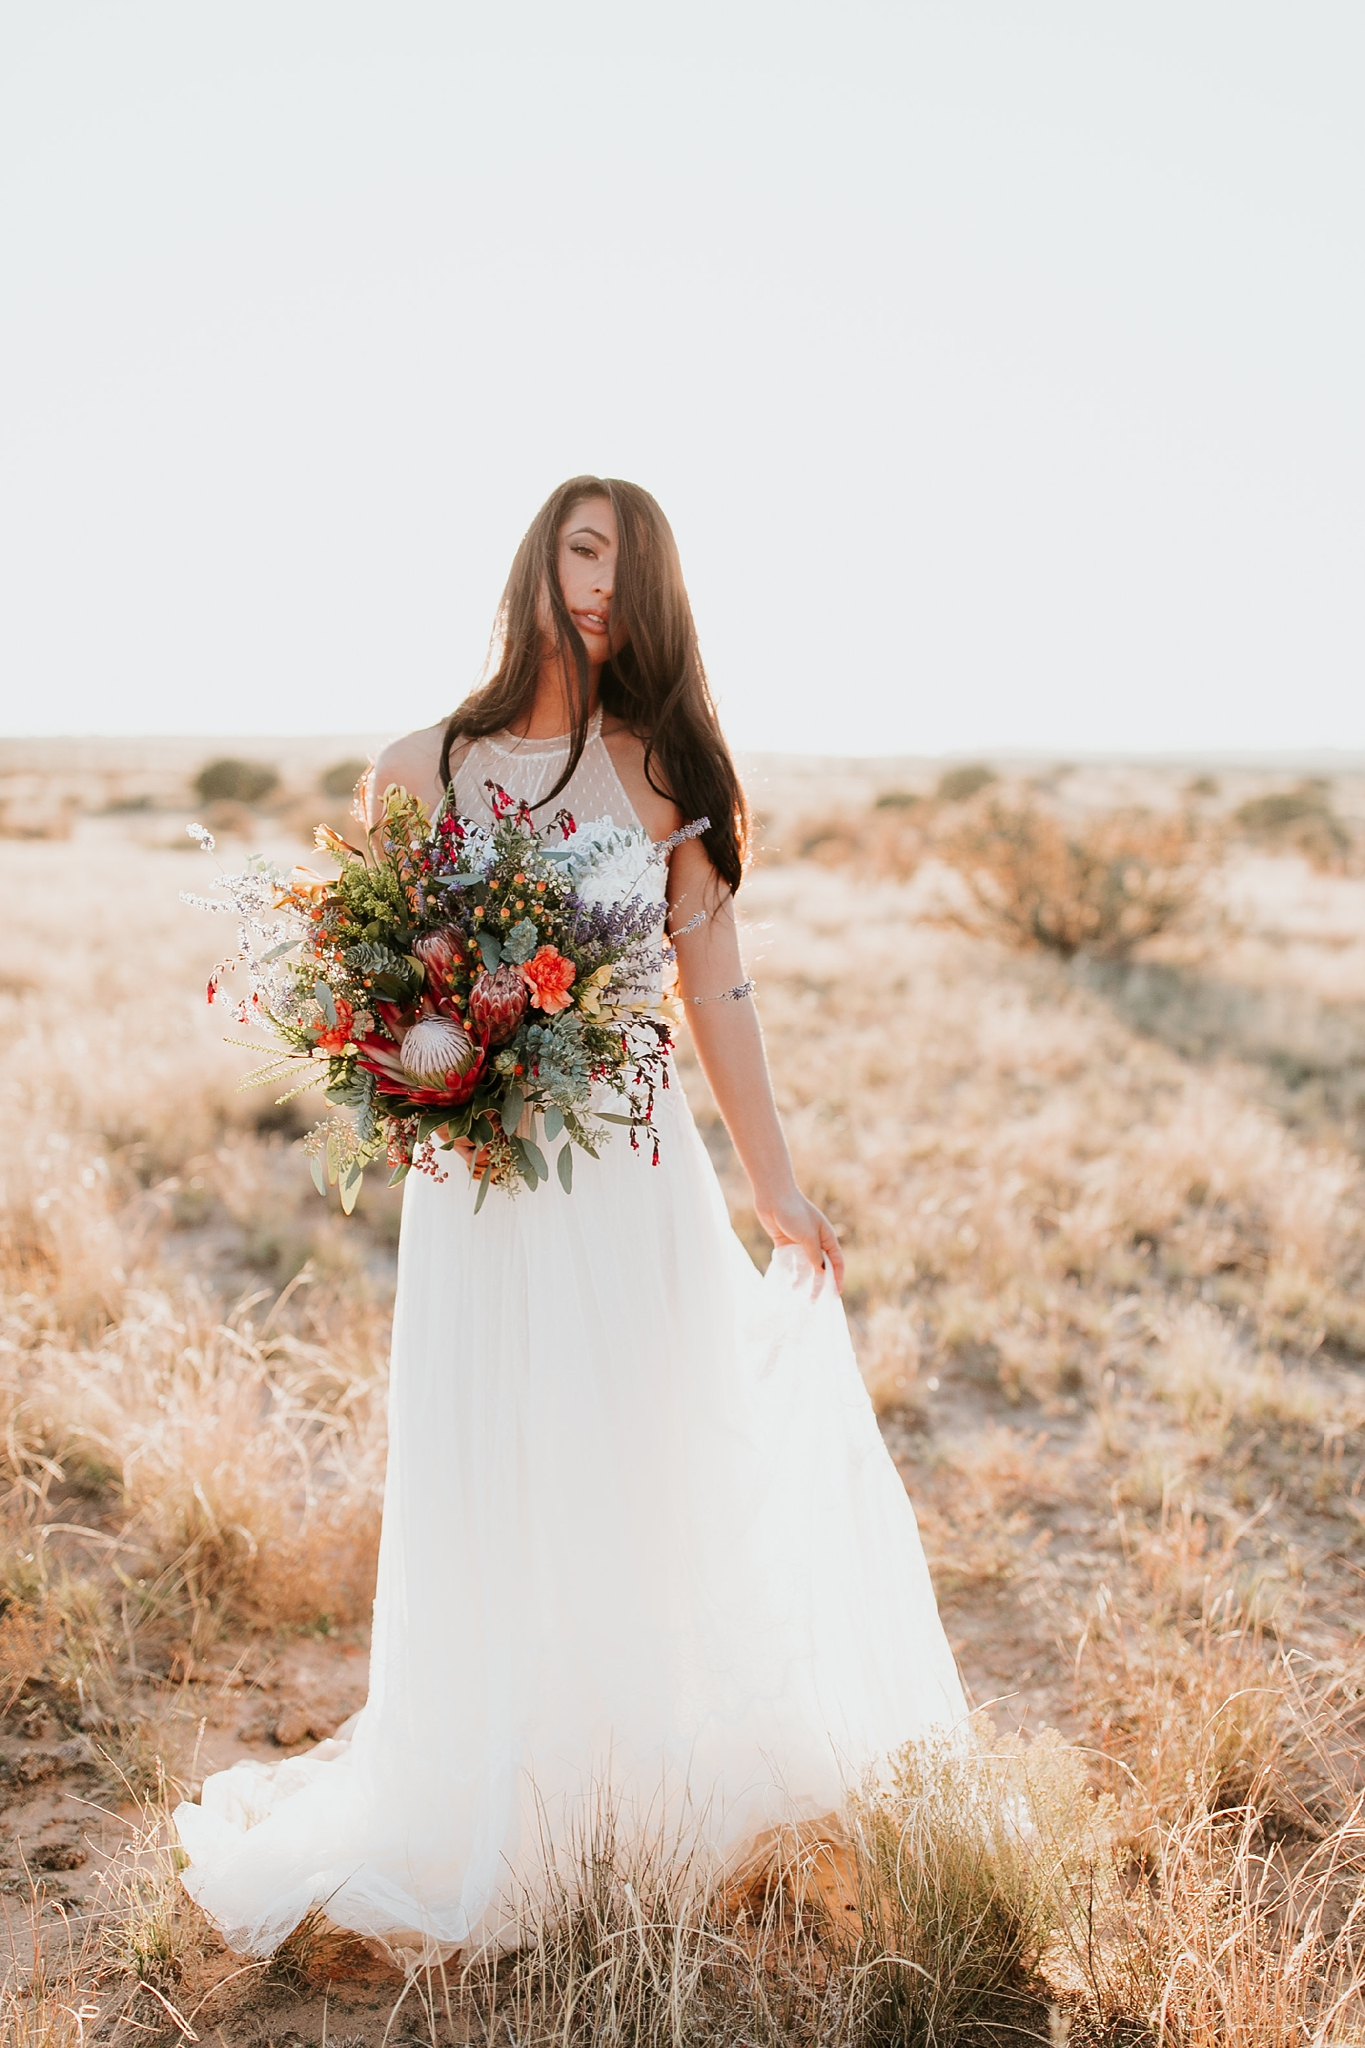 Alicia+lucia+photography+-+albuquerque+wedding+photographer+-+santa+fe+wedding+photography+-+new+mexico+wedding+photographer+-+new+mexico+wedding+-+wedding+gowns+-+bridal+gowns+-+a+line+wedding+gown_0058.jpg